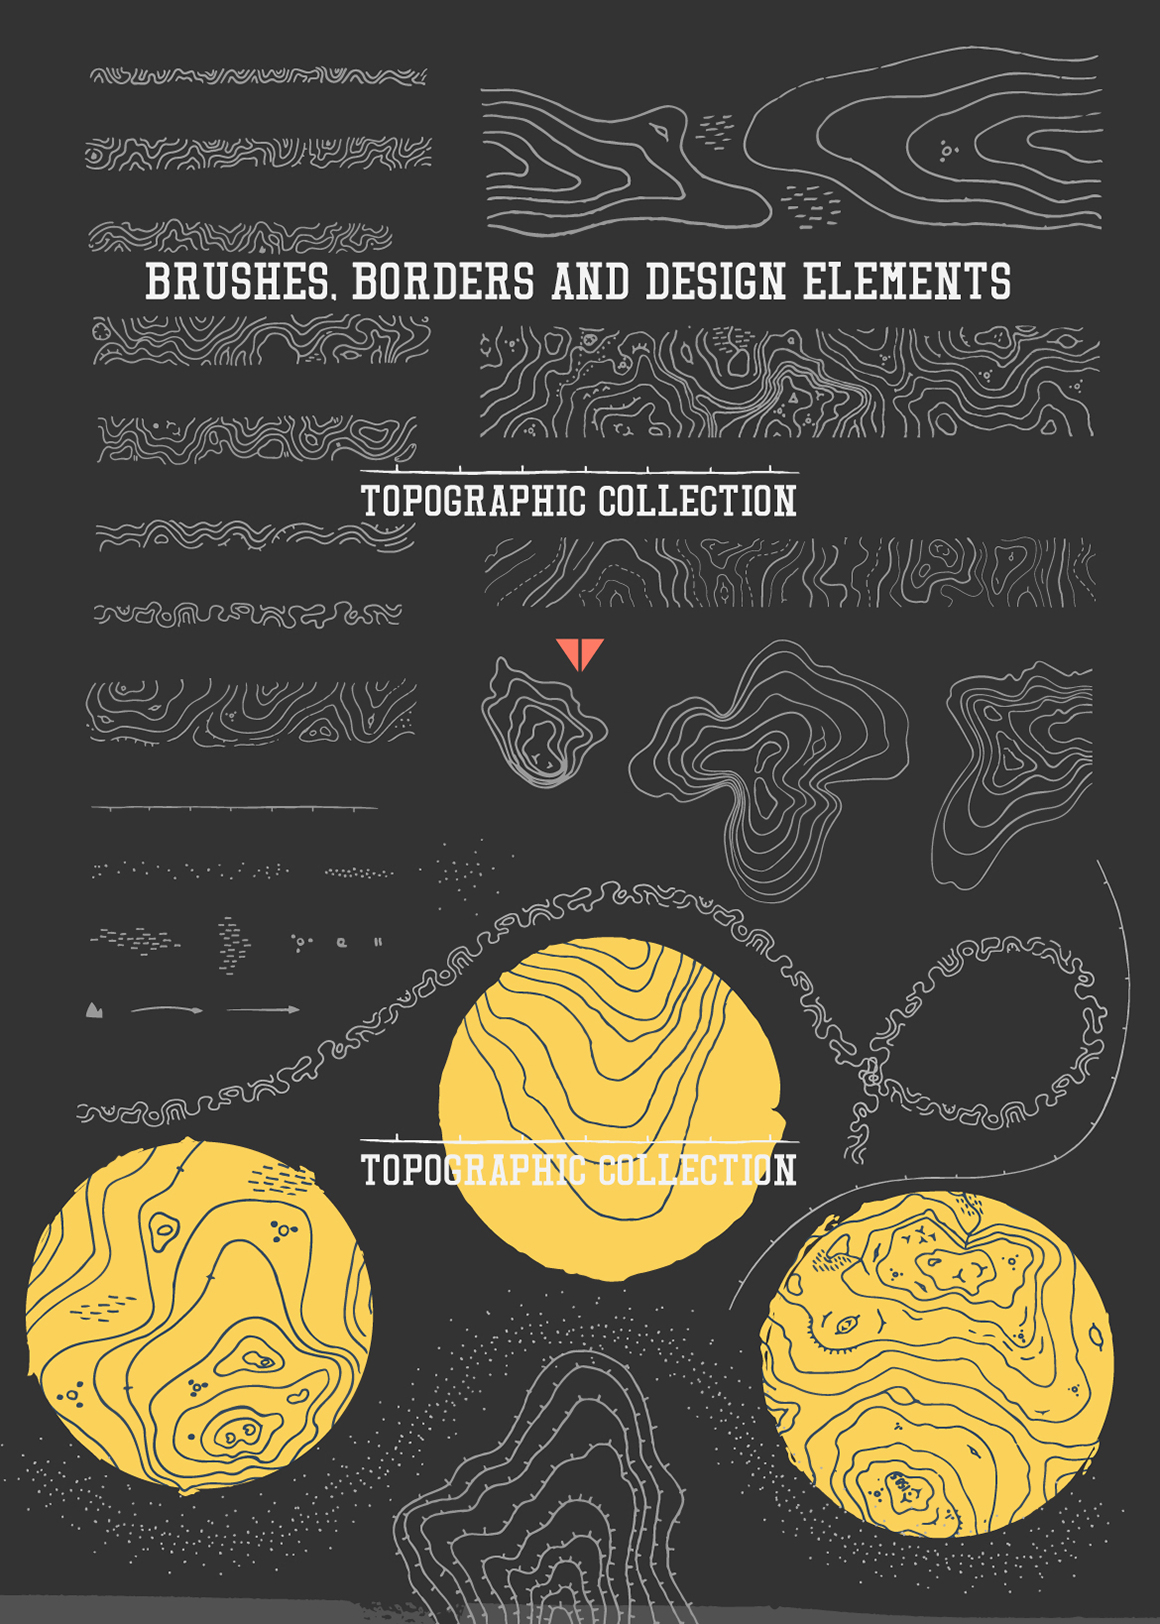 Authentic Topographic Design Collection